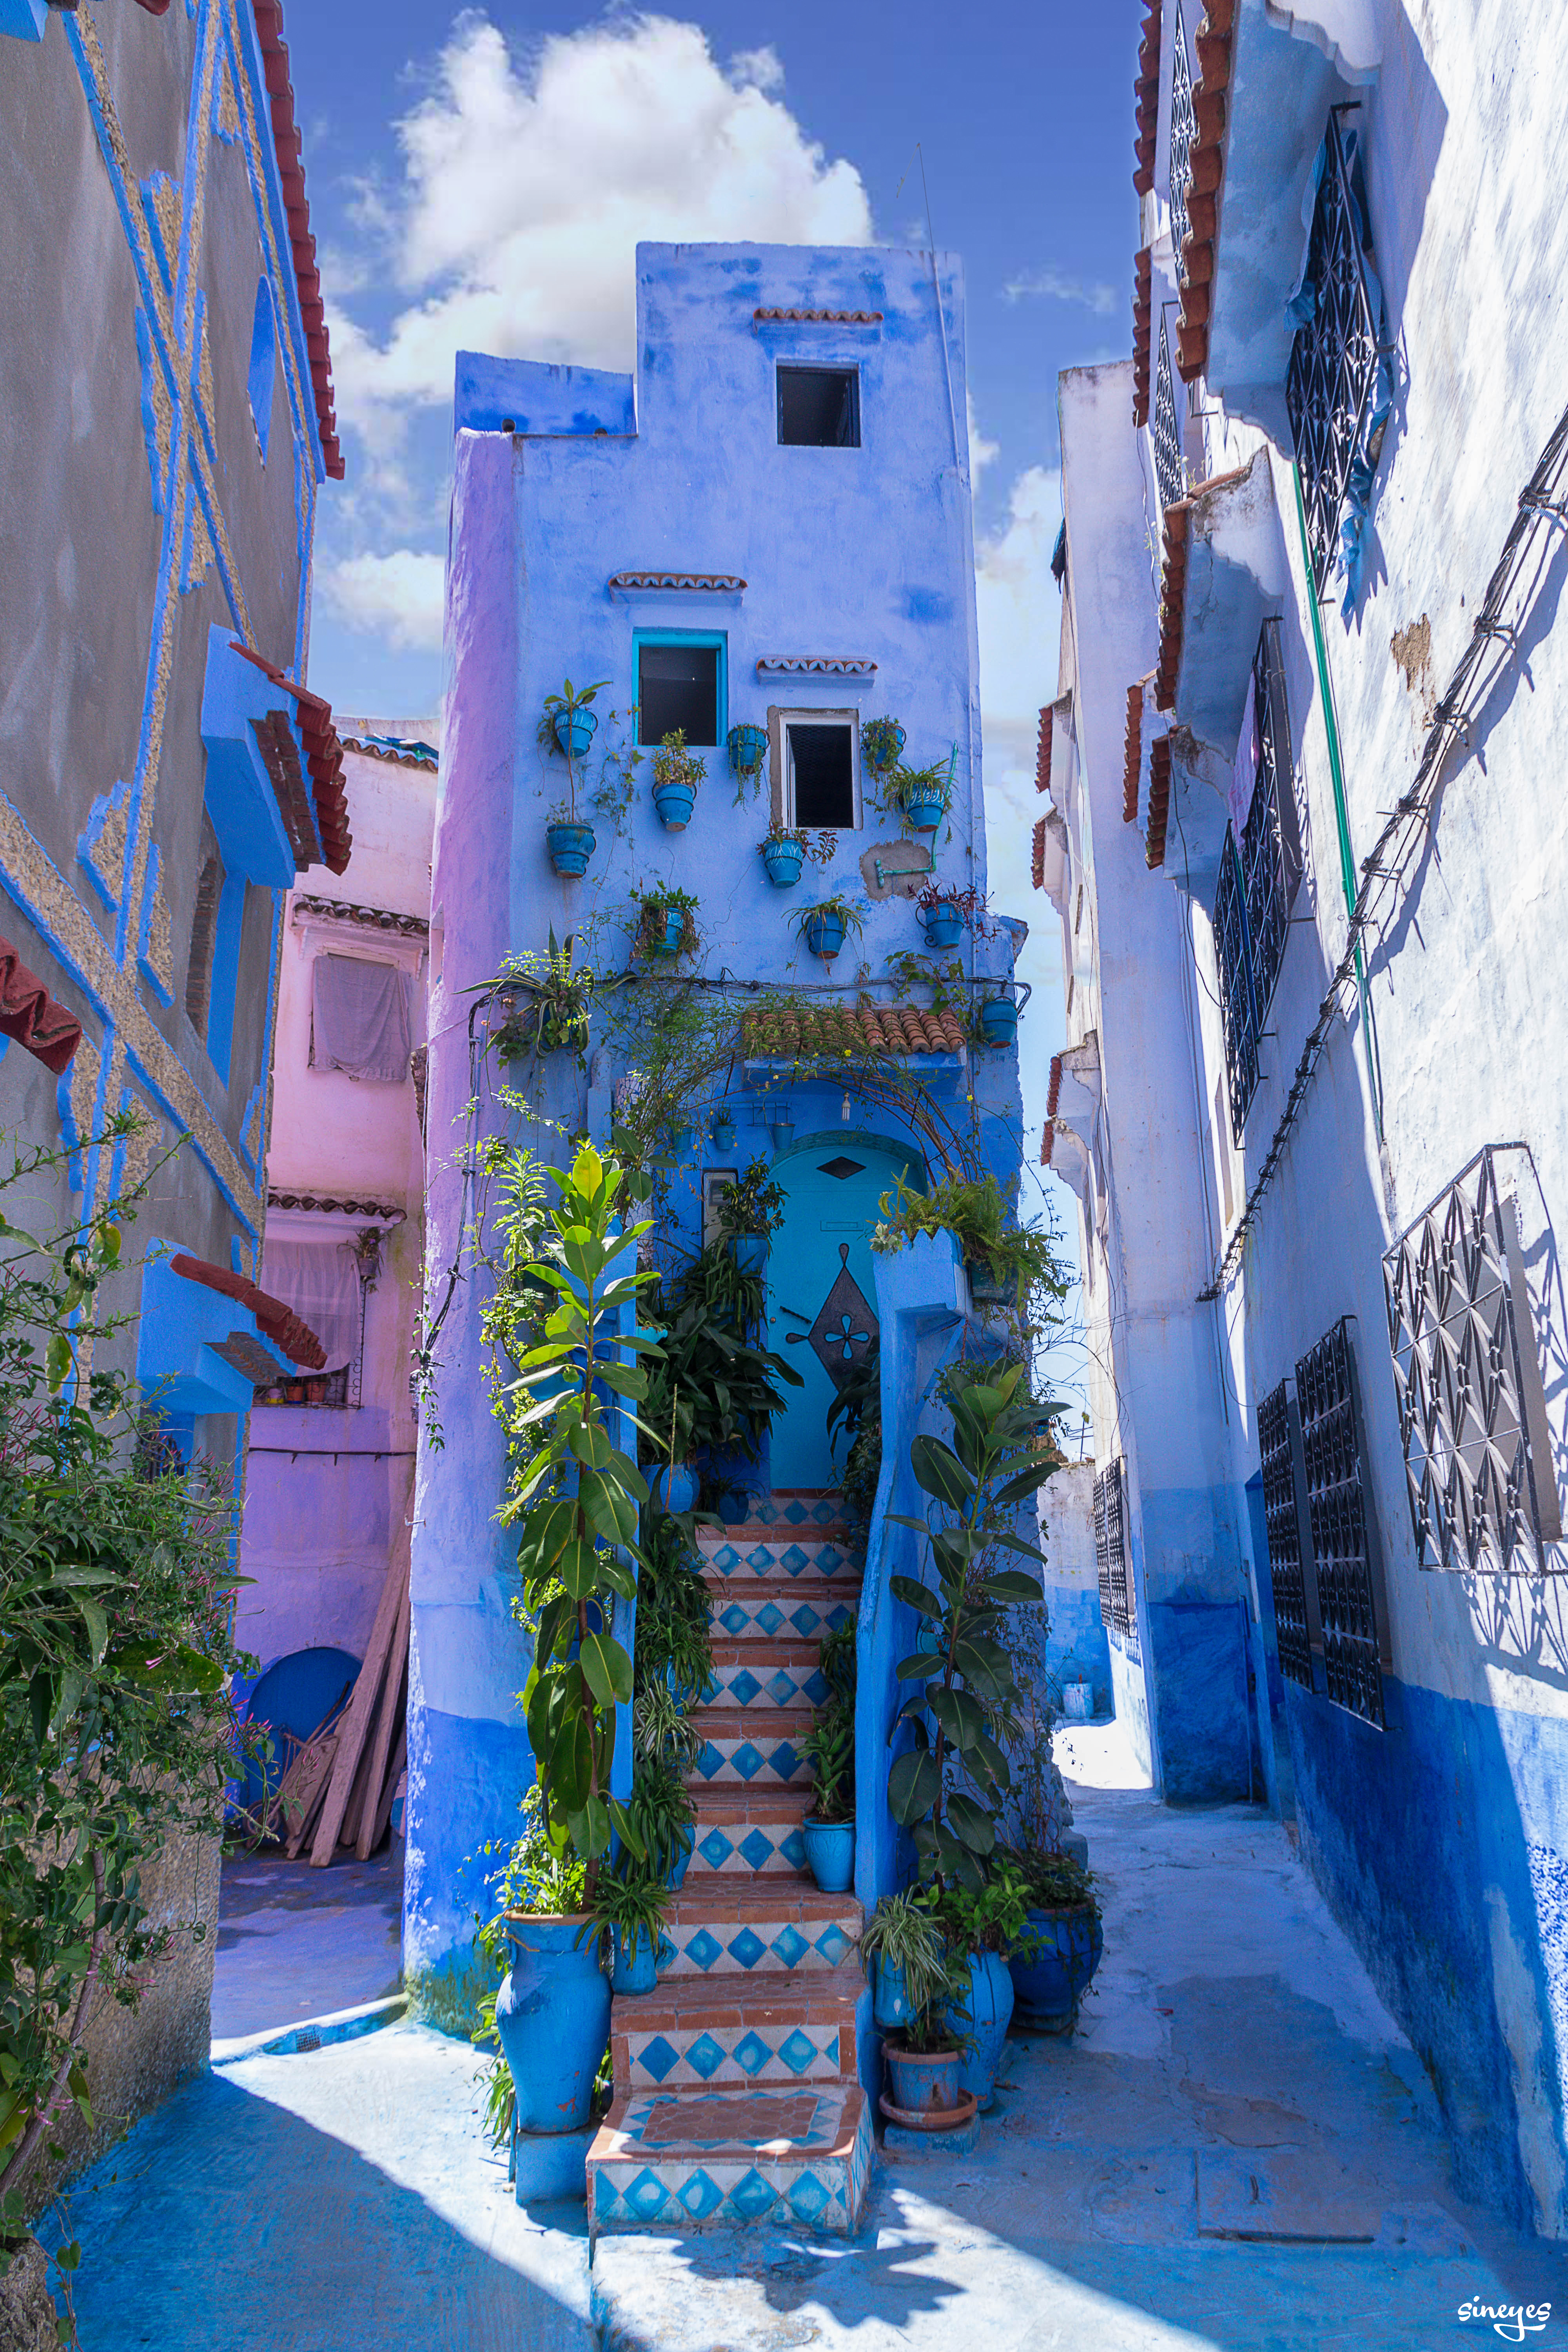 Slim House - Chefchaouen, Maroc, avril 2018